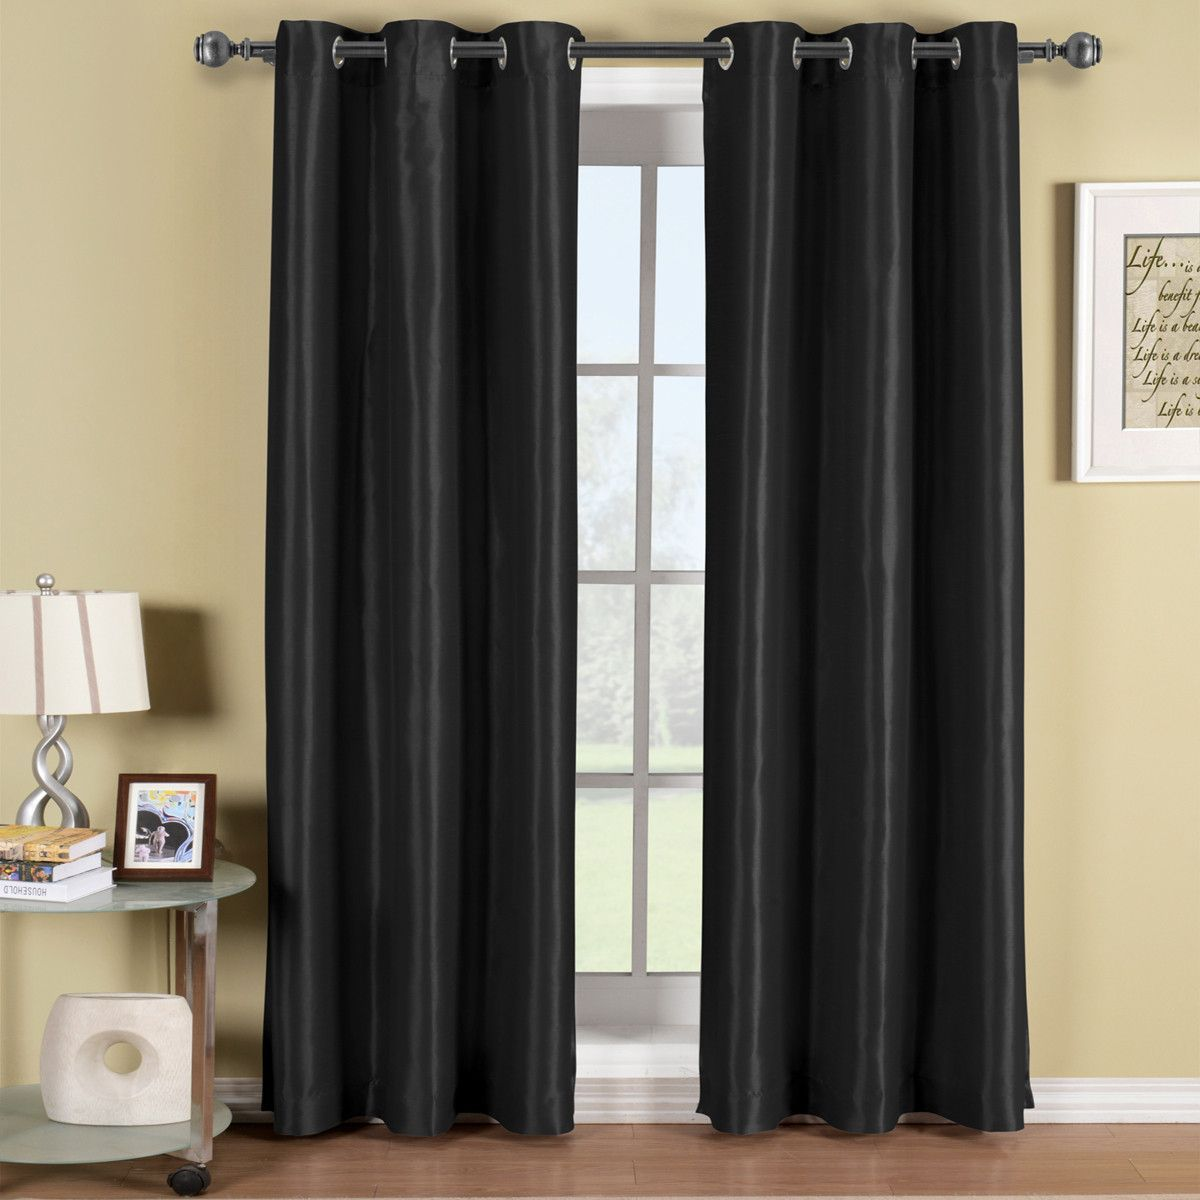 Soho Grommet Thermal Blackout Window Curtain Panel